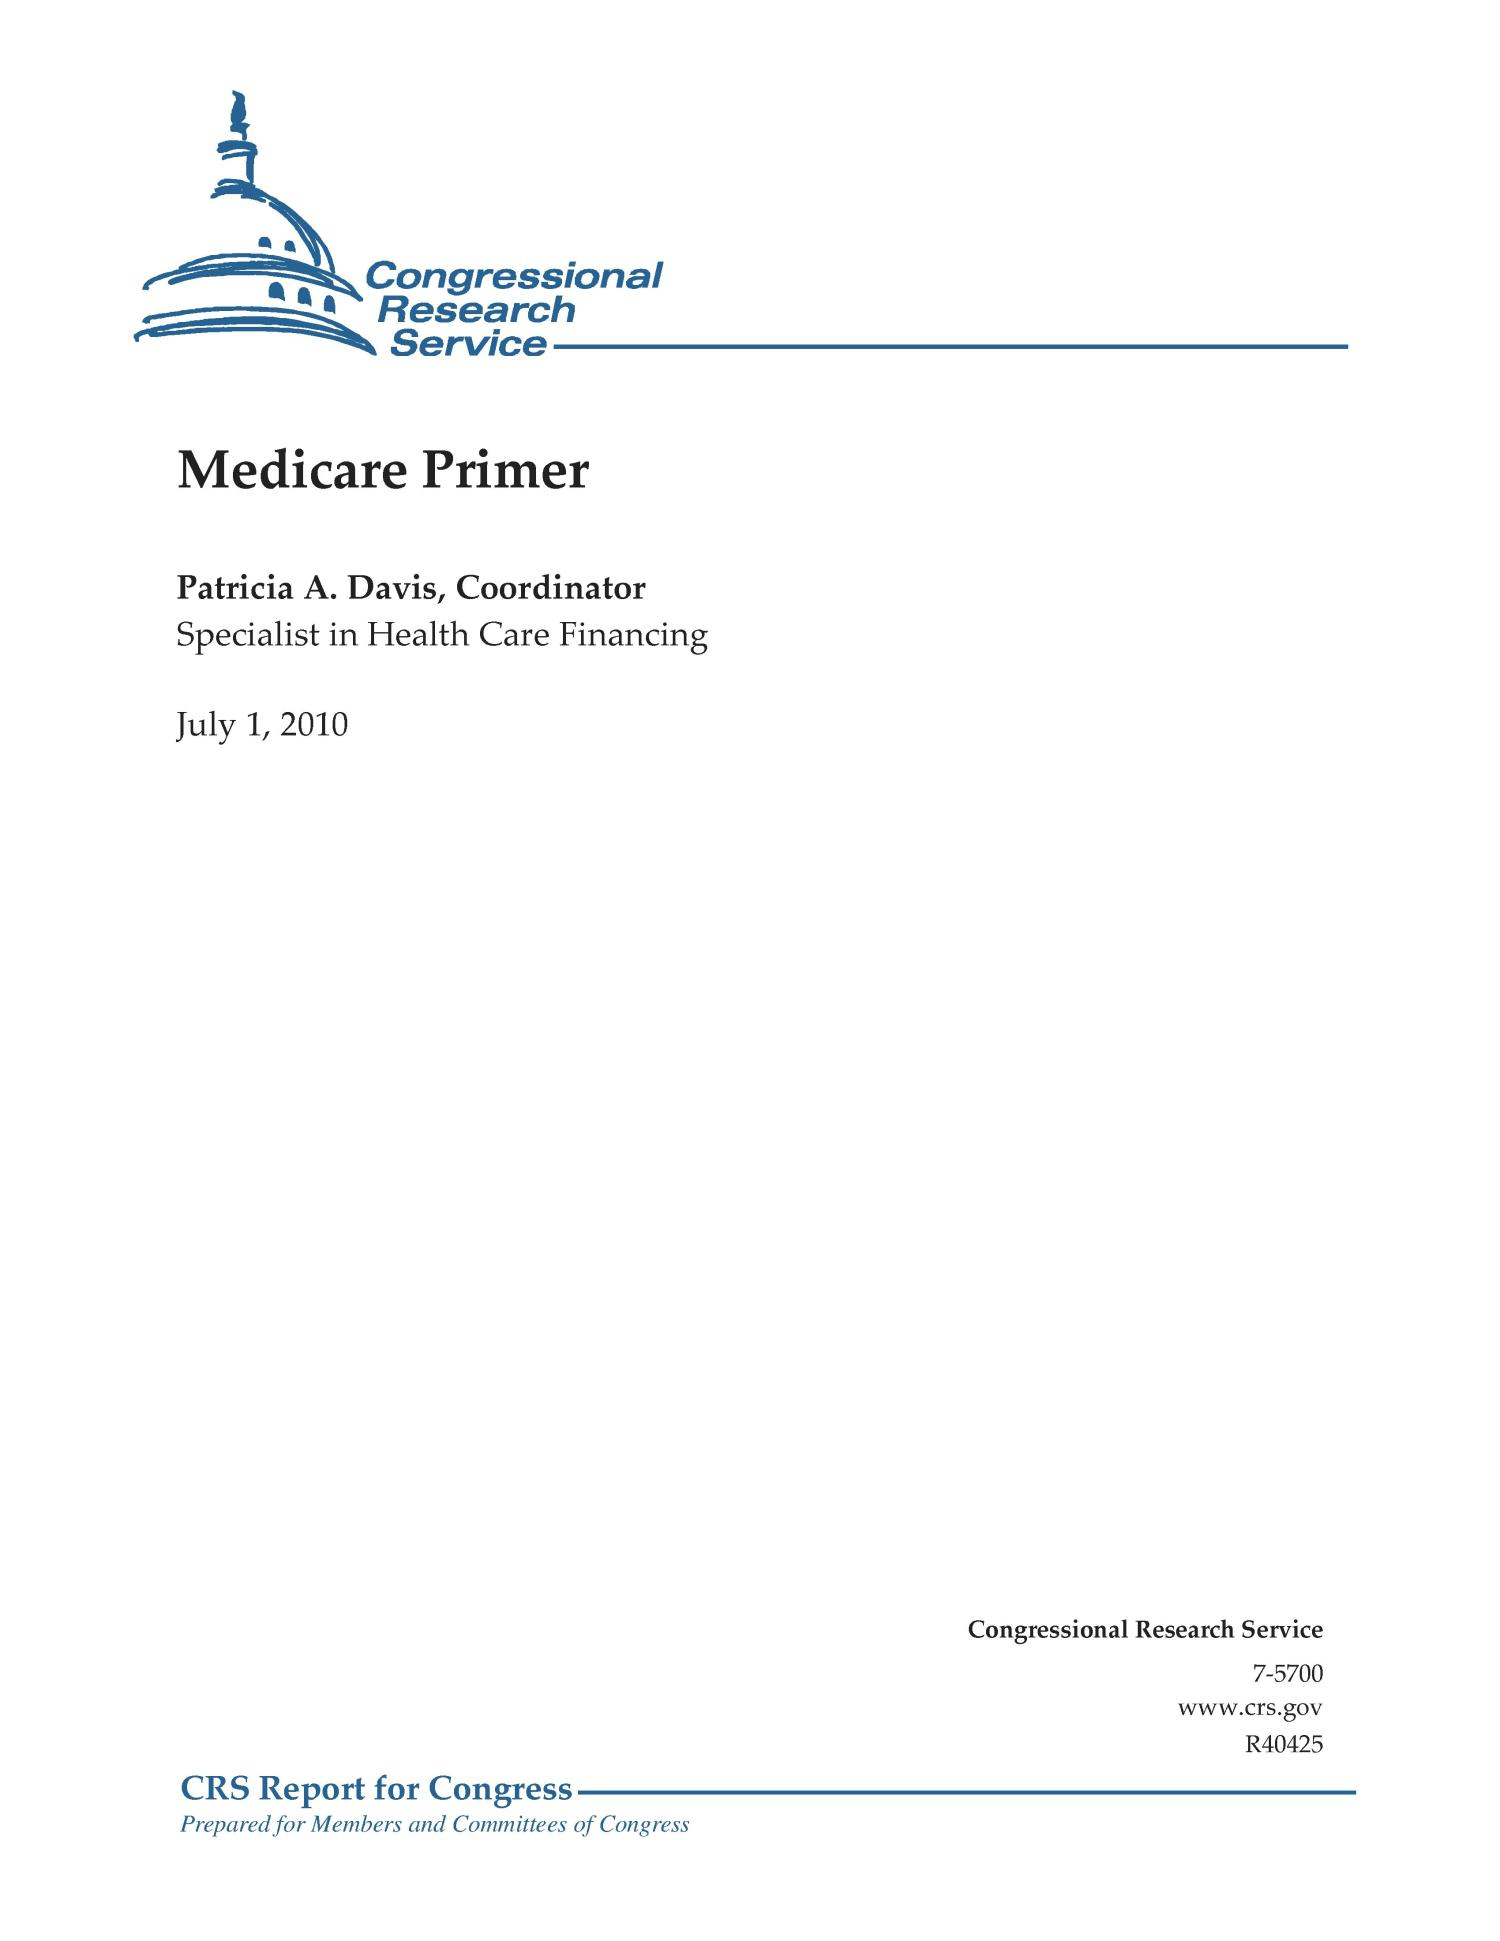 Medicare Primer                                                                                                      [Sequence #]: 1 of 27